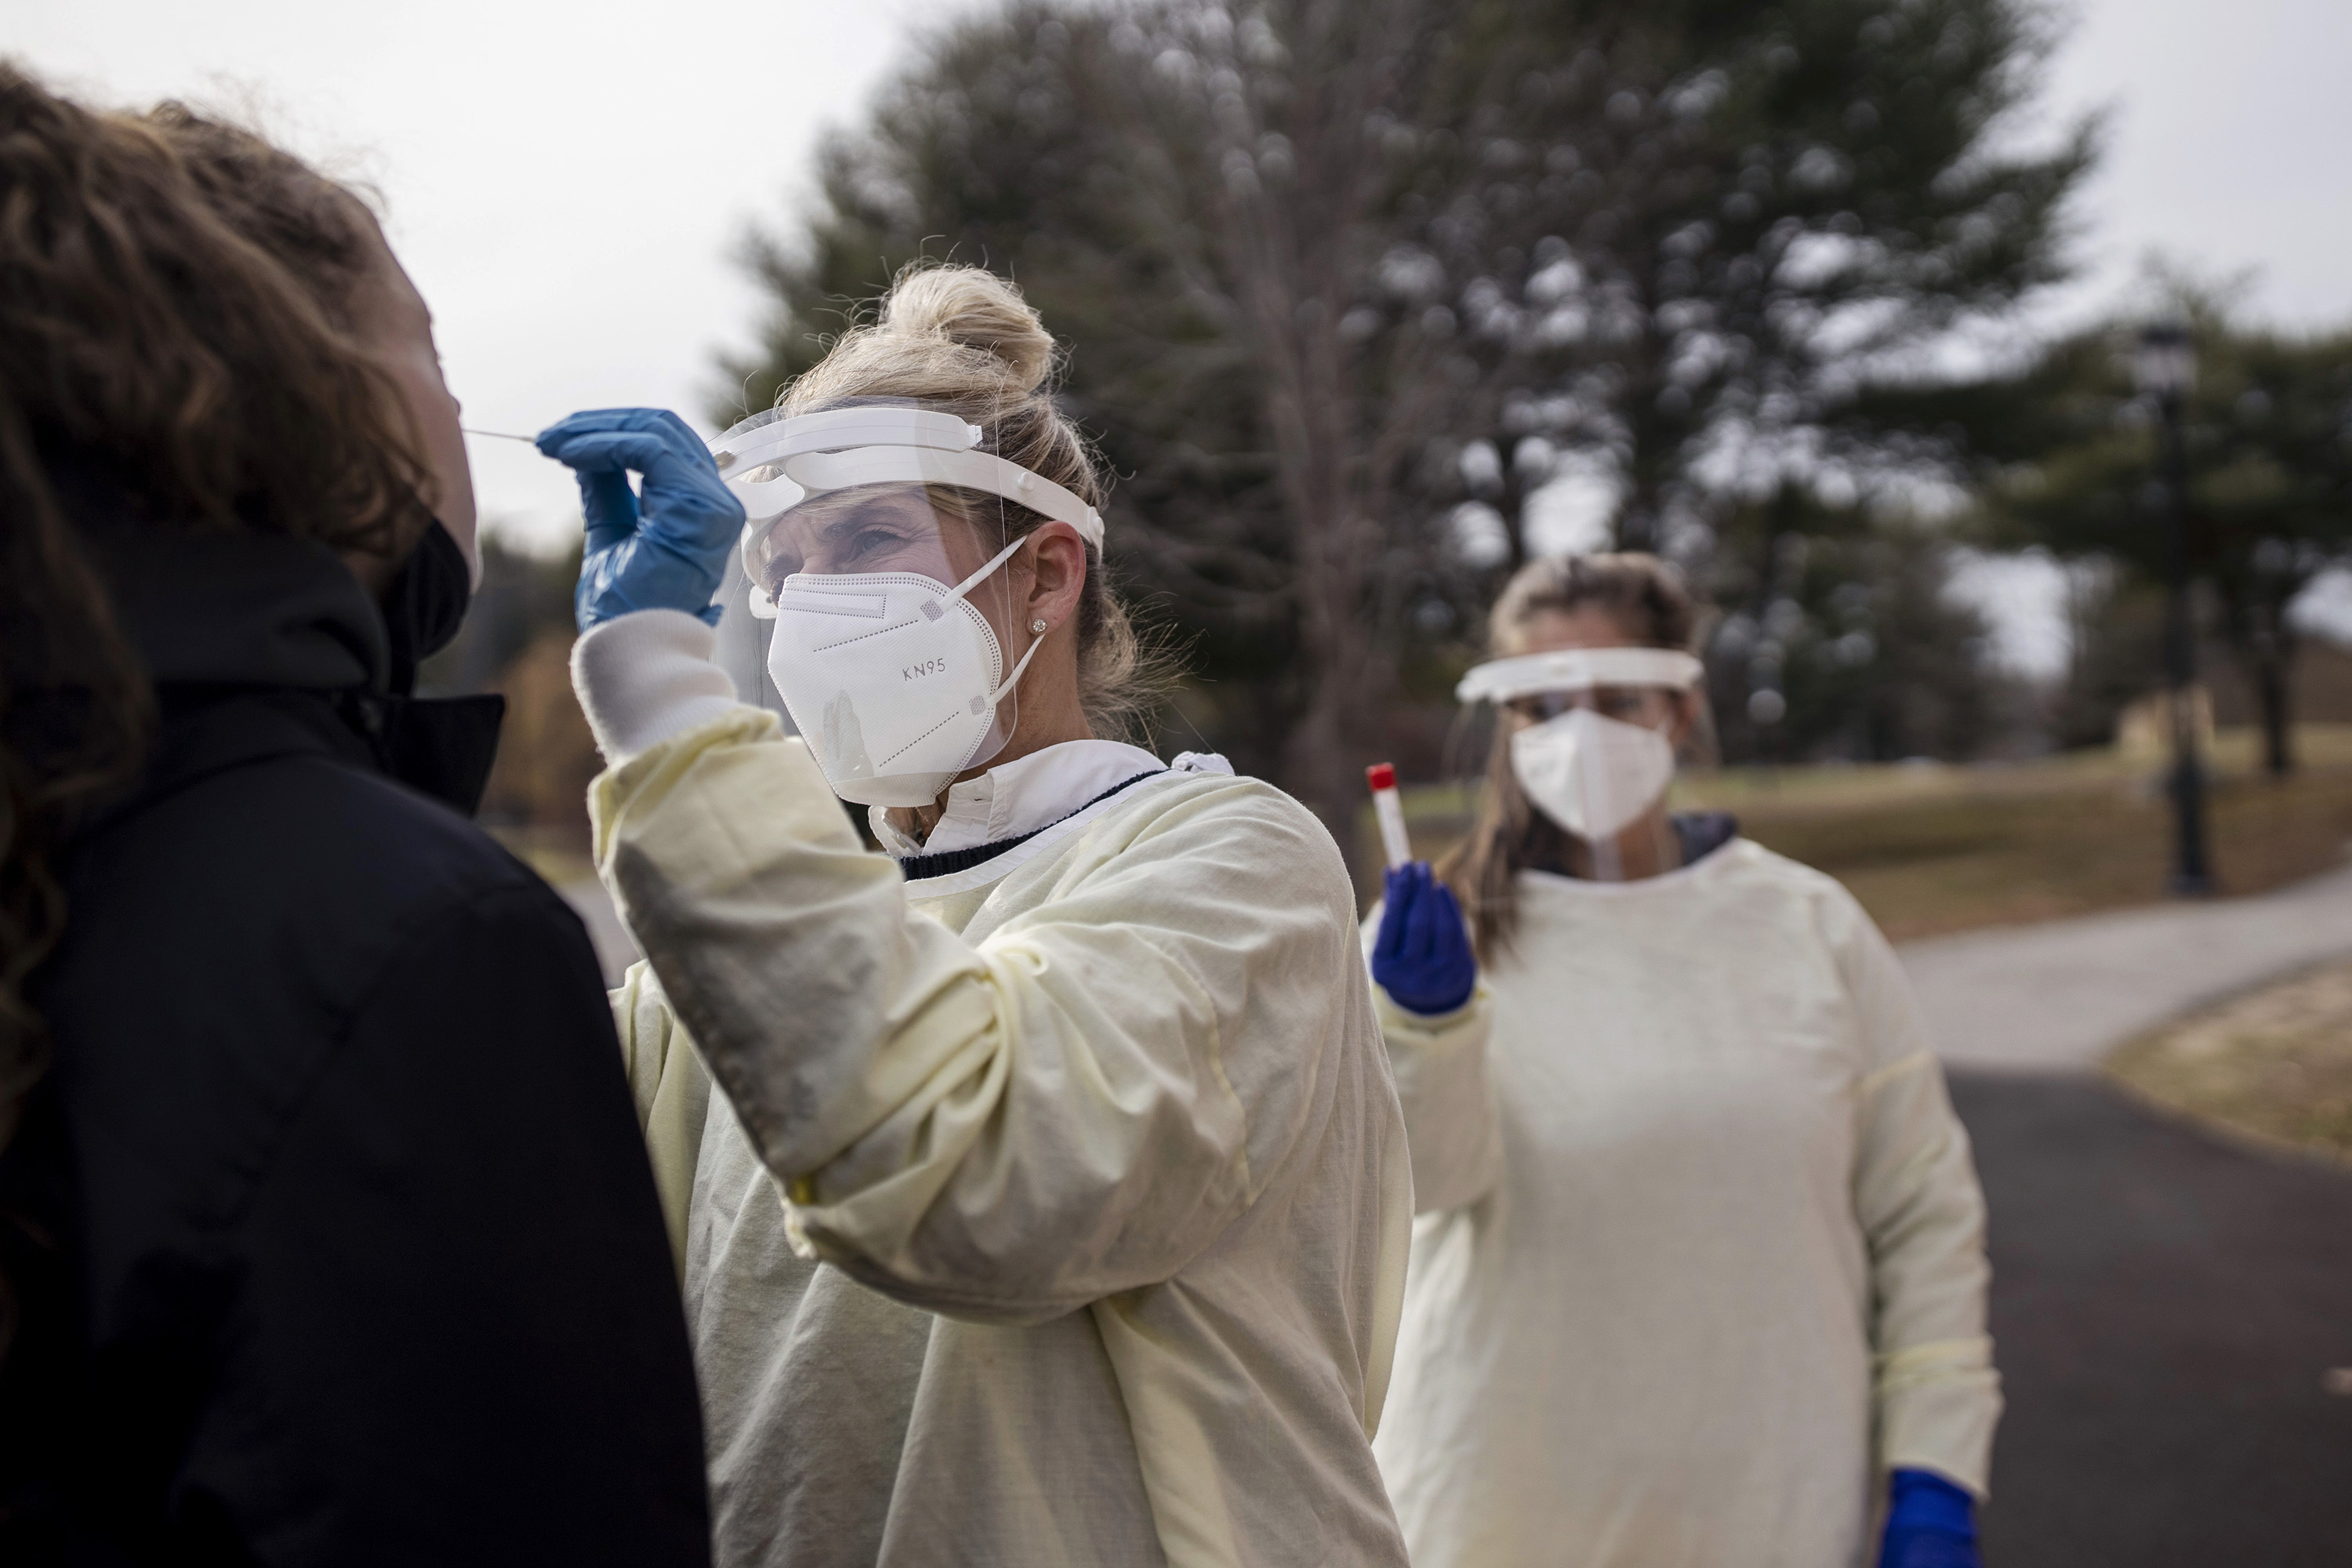 A health care worker in full mask, gown, gloves, and face shield performs a Covid-19 test swab outdoors on a student heading to school.